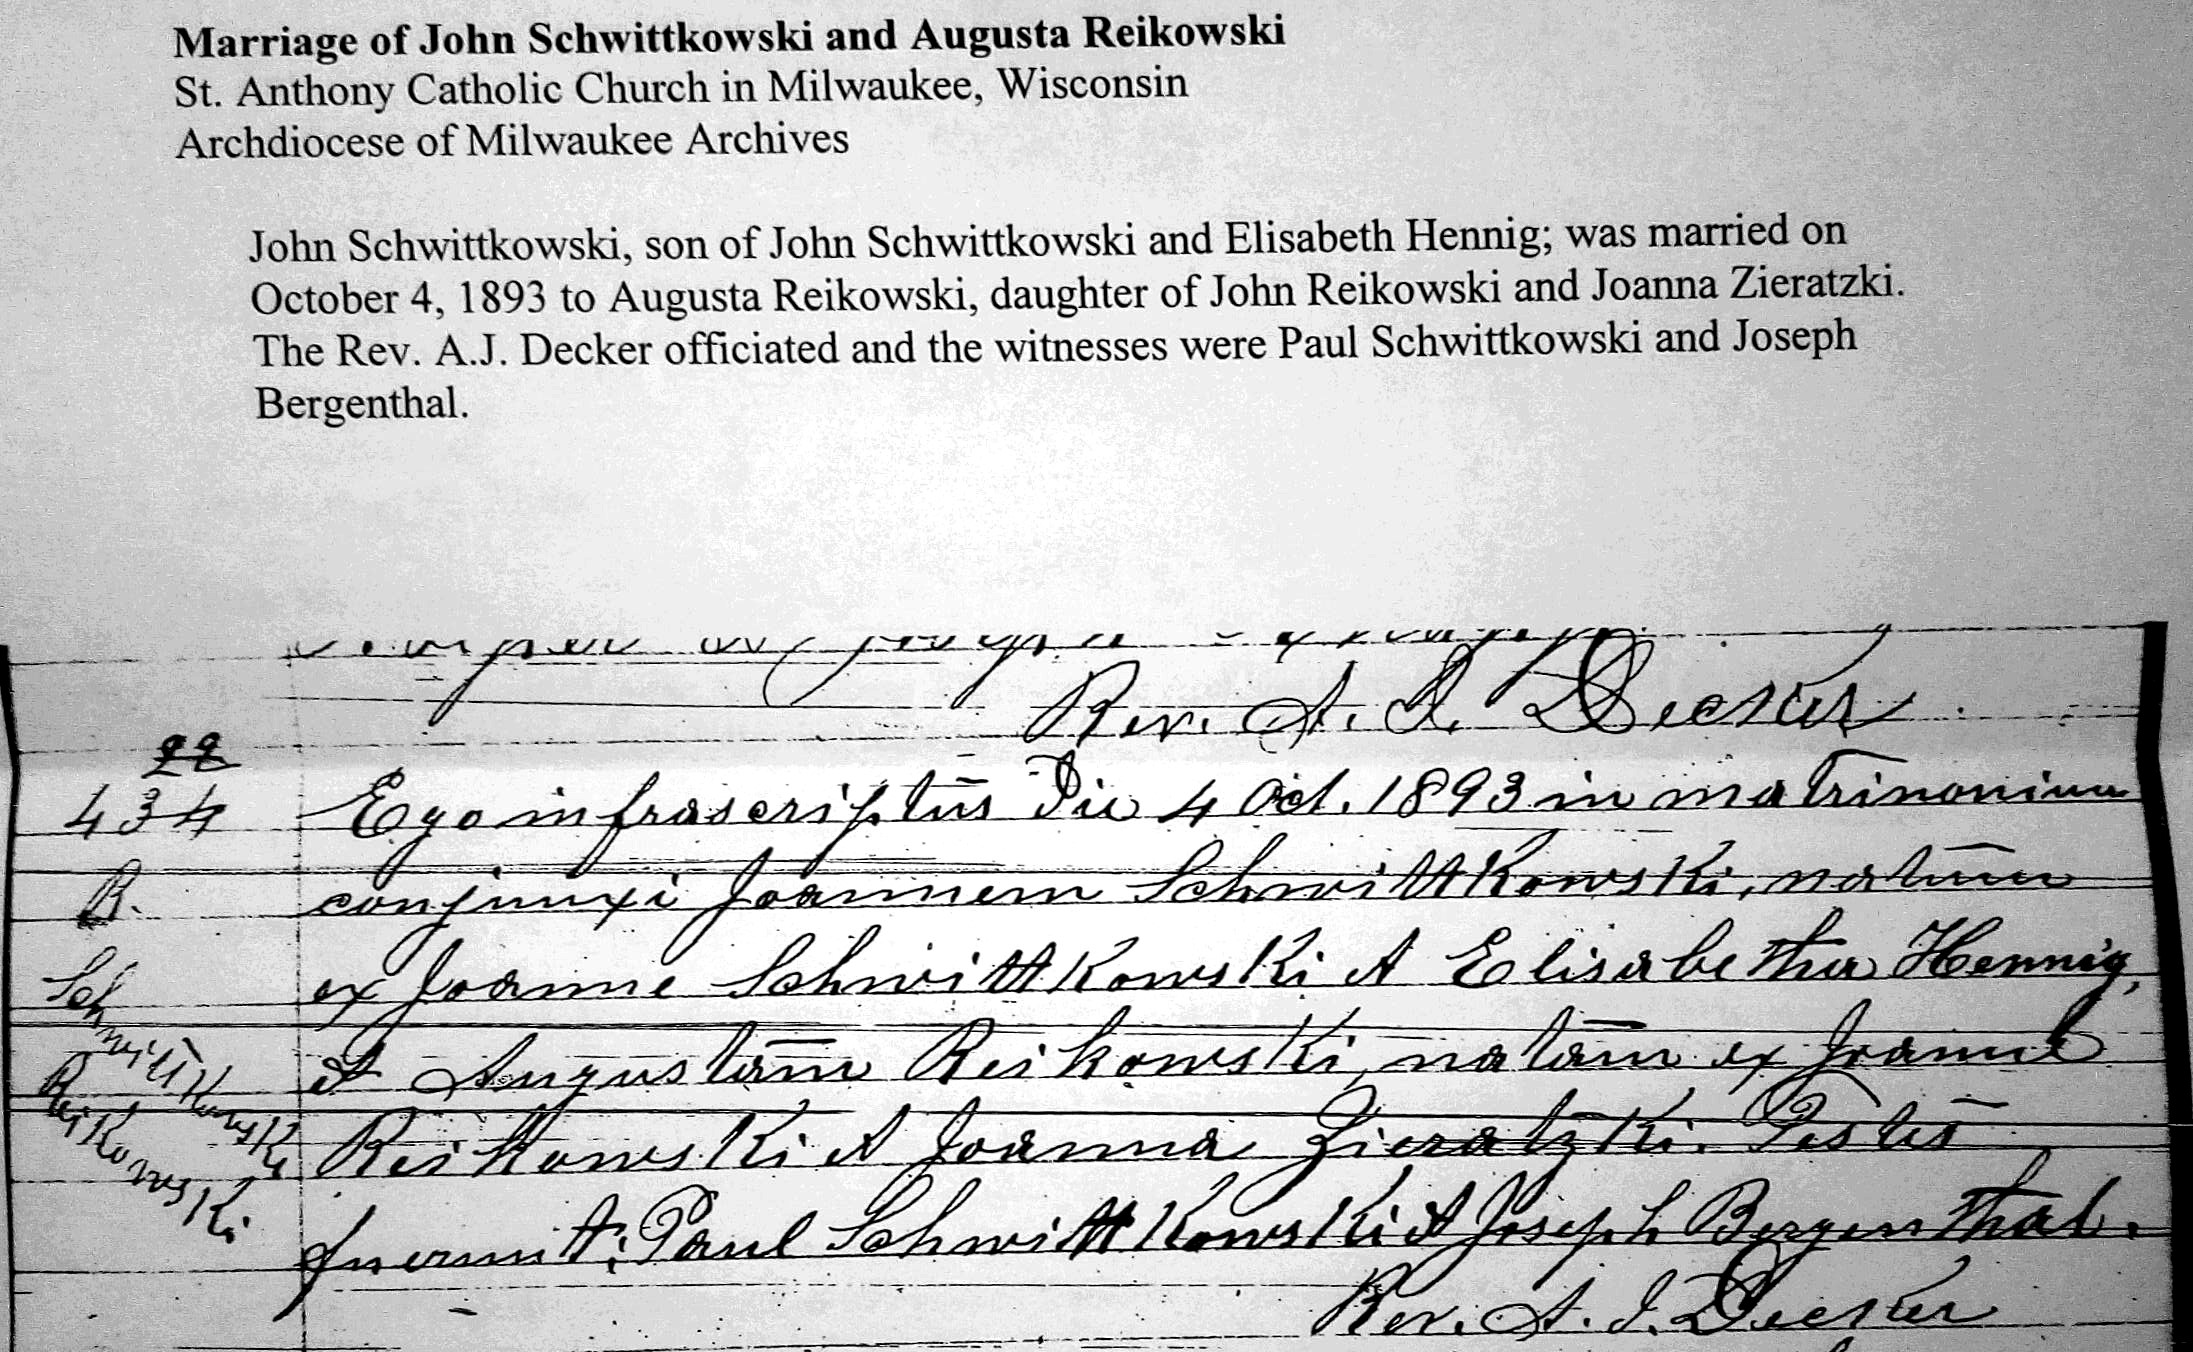 Marriage of John Schwittkowski and Augusta Reikowski